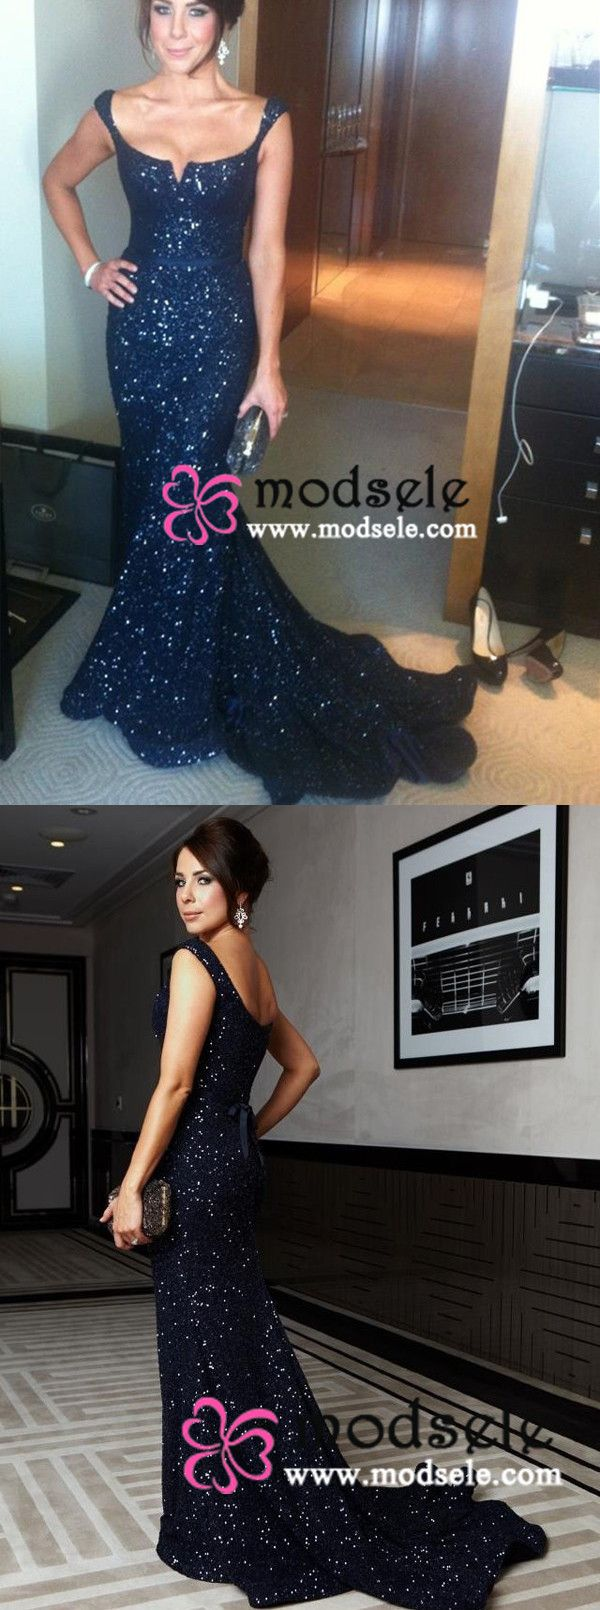 Gorgeous mermaid long navy sequined prom dress with sash matrix